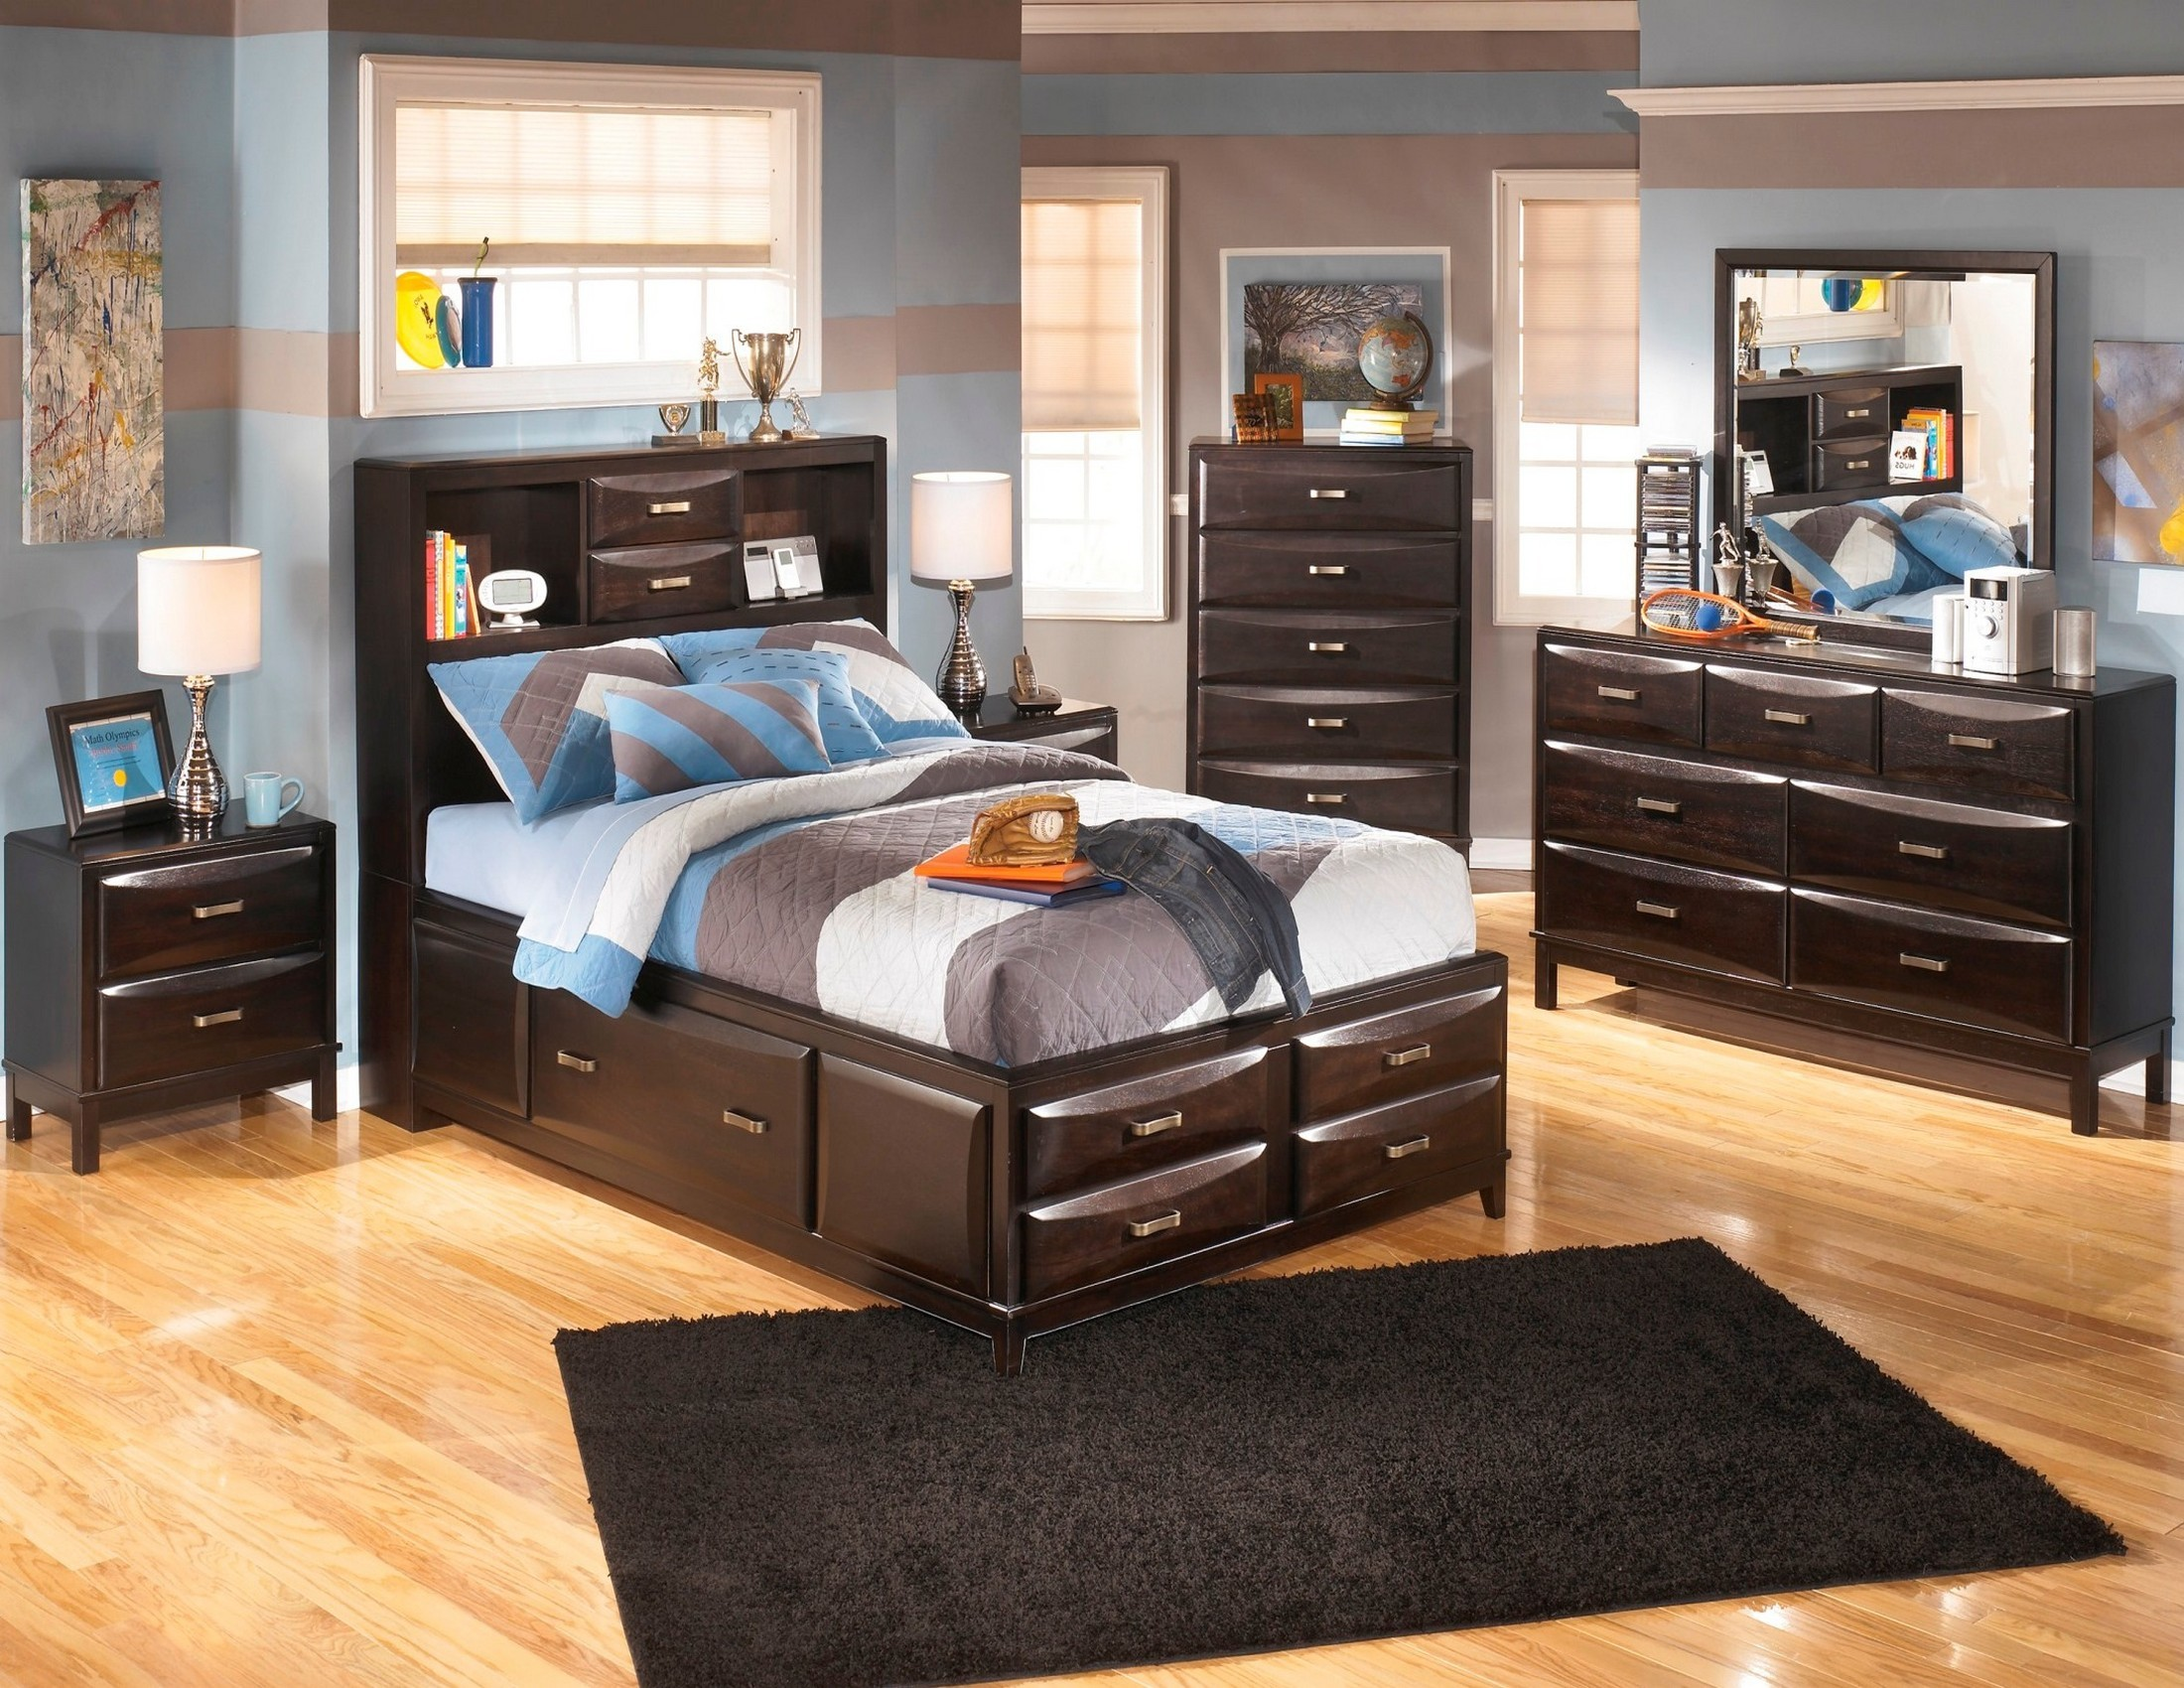 Kira Youth Storage Bedroom Set from Ashley B473